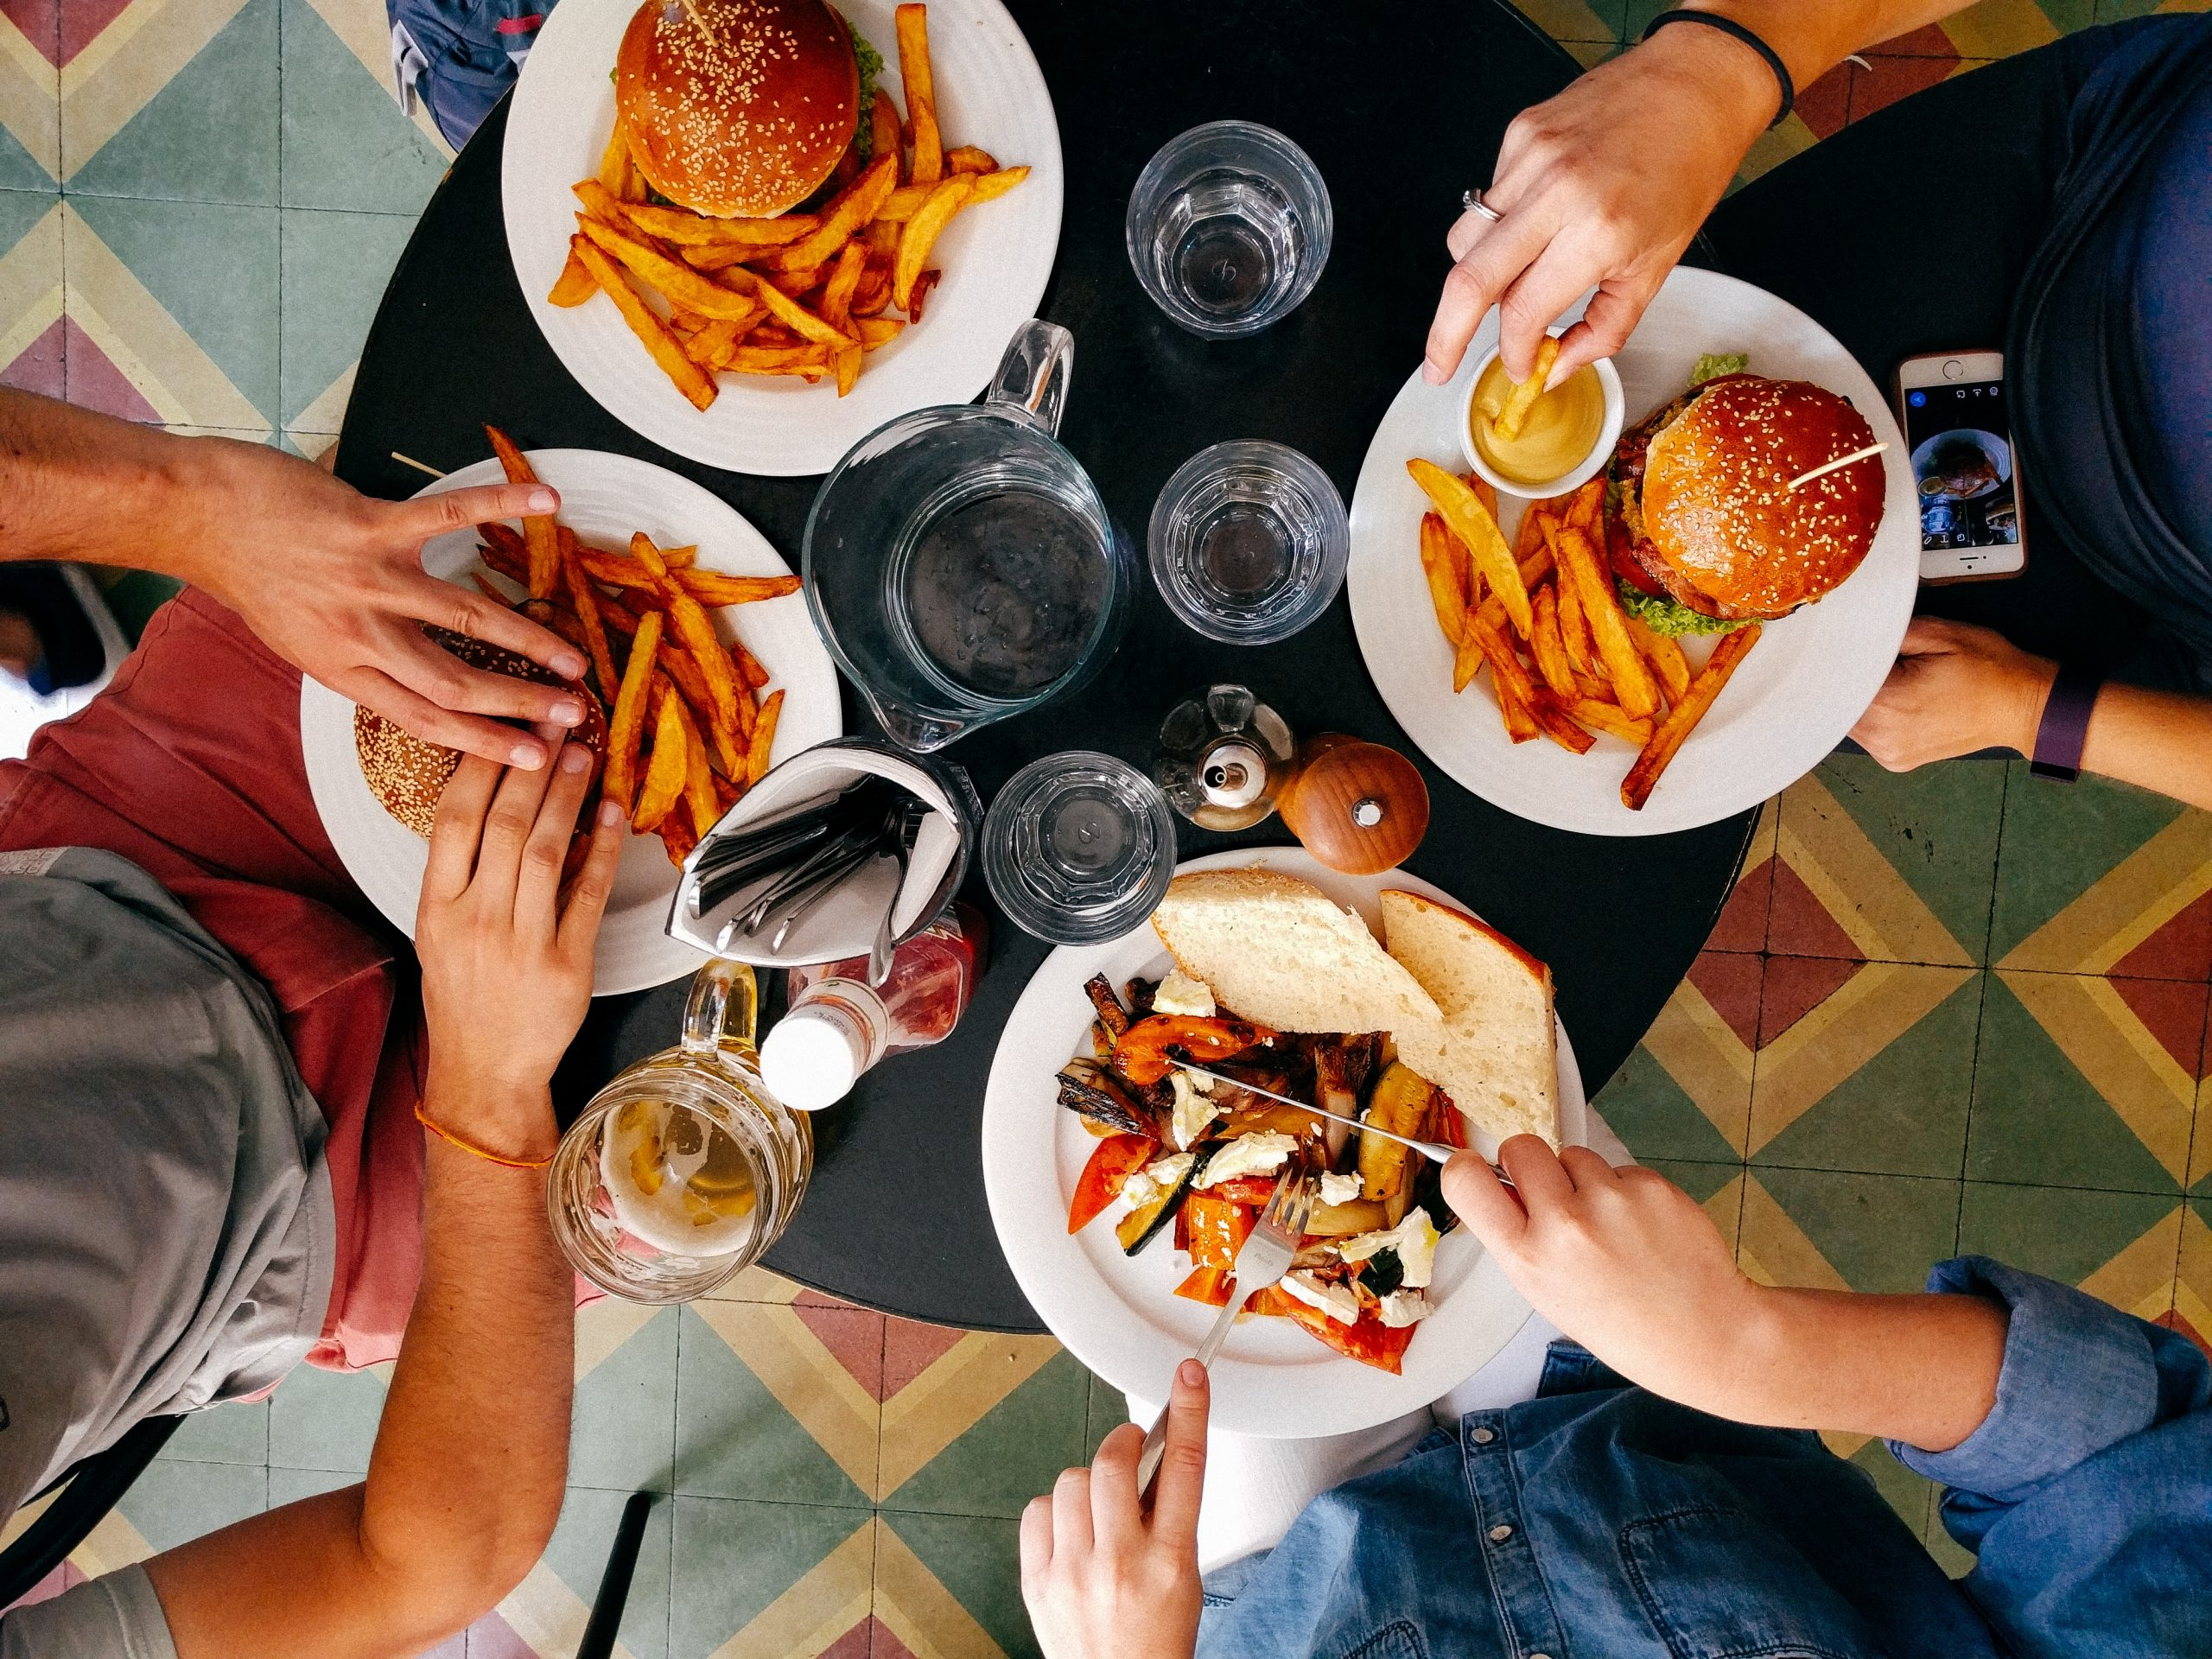 Eat Out to Help Out – over 64 million meals